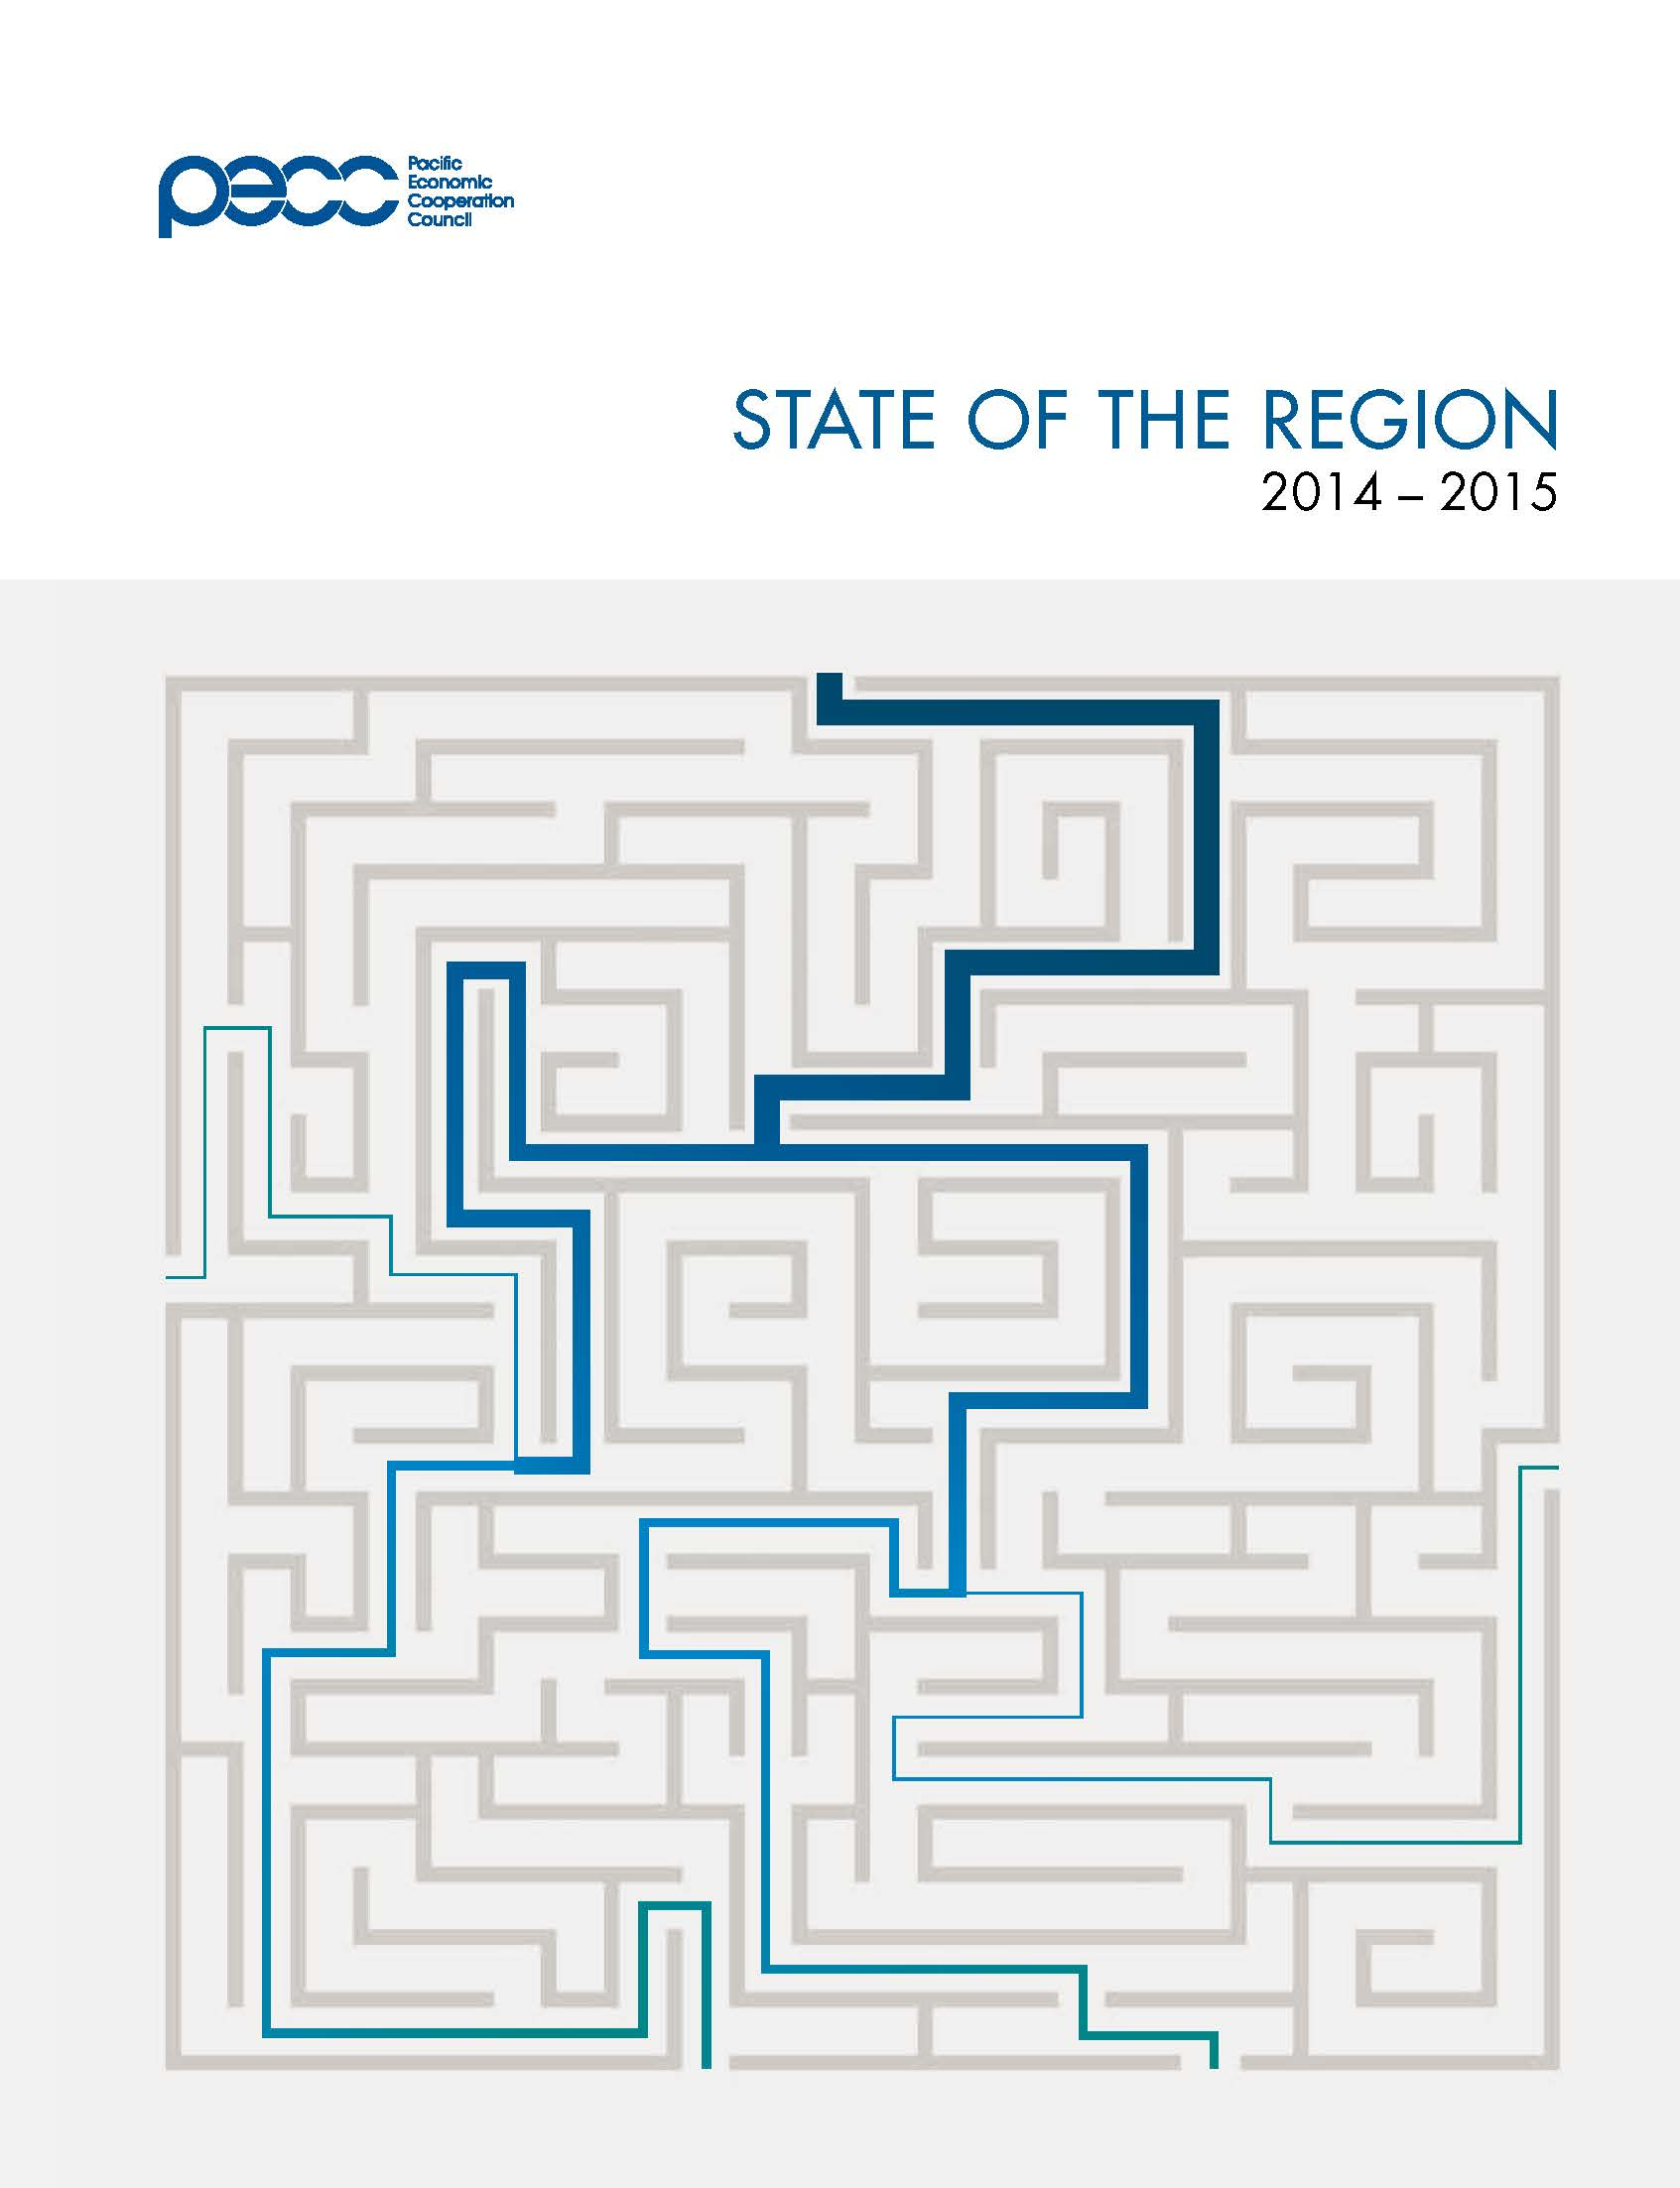 SOTR 2014-2015 cover